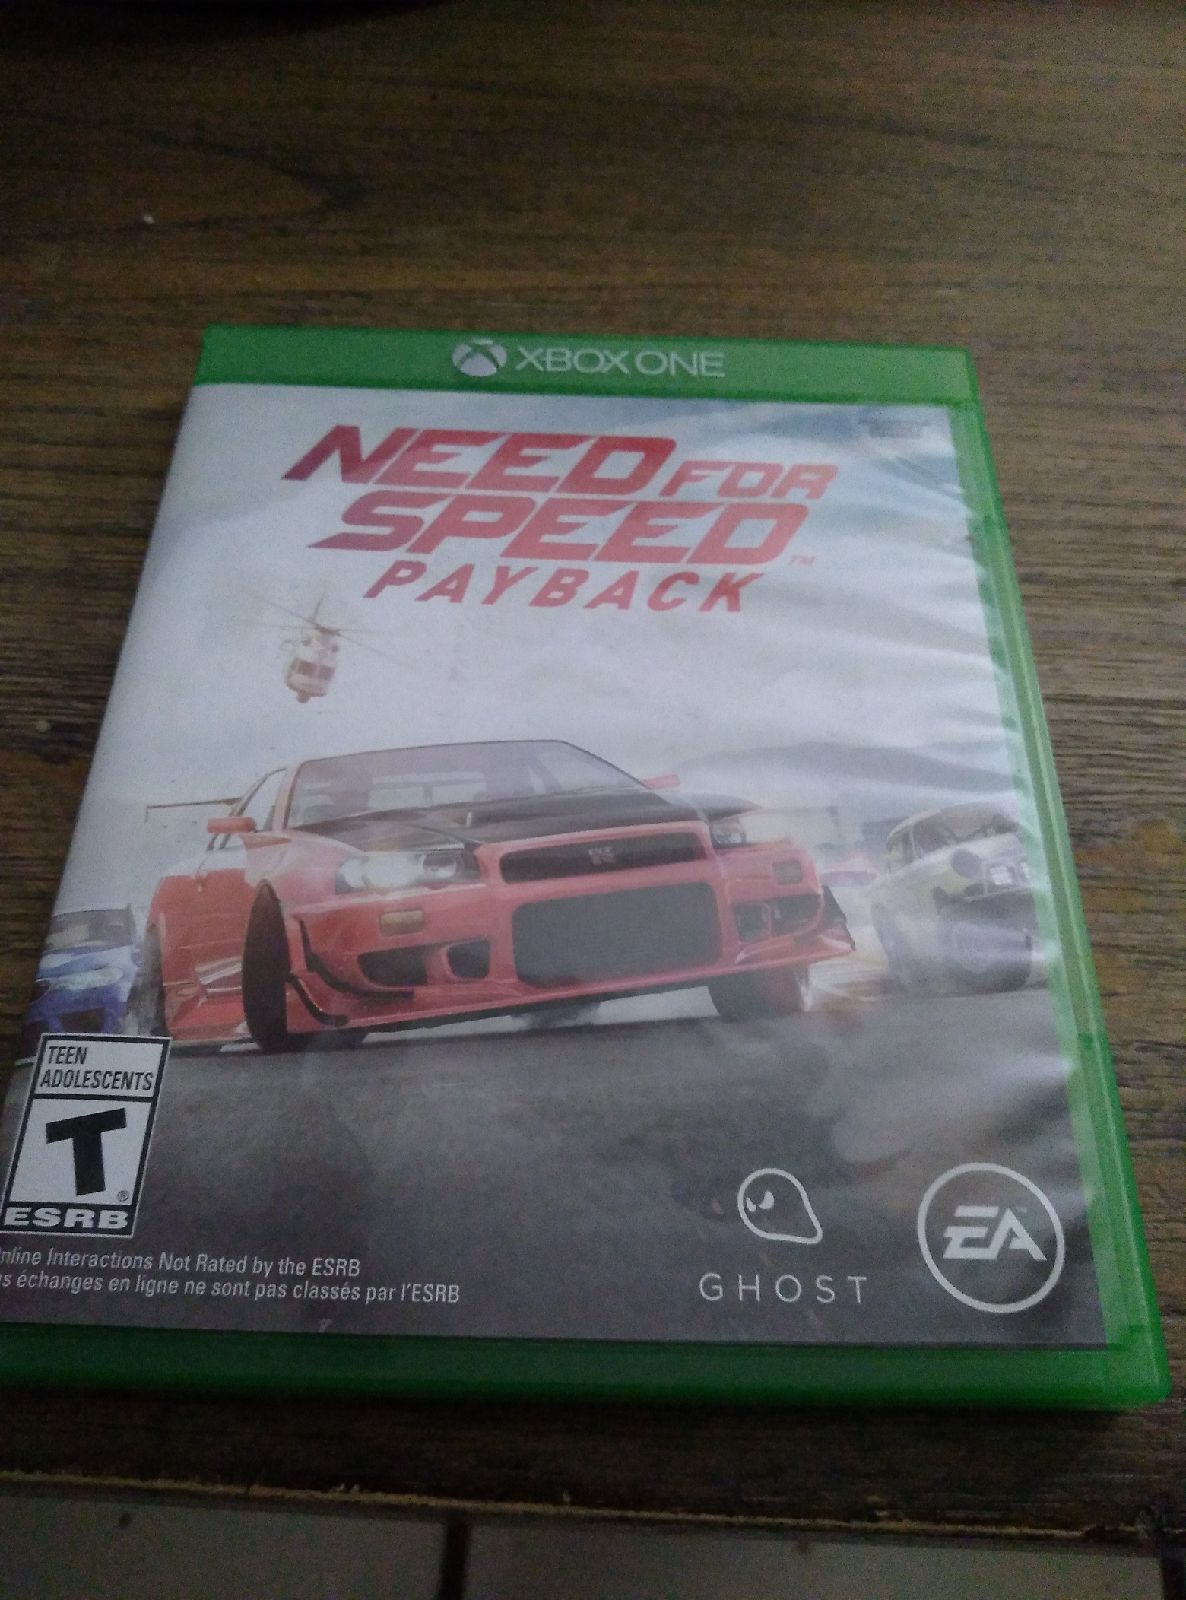 Need for speed (Xbox one game)